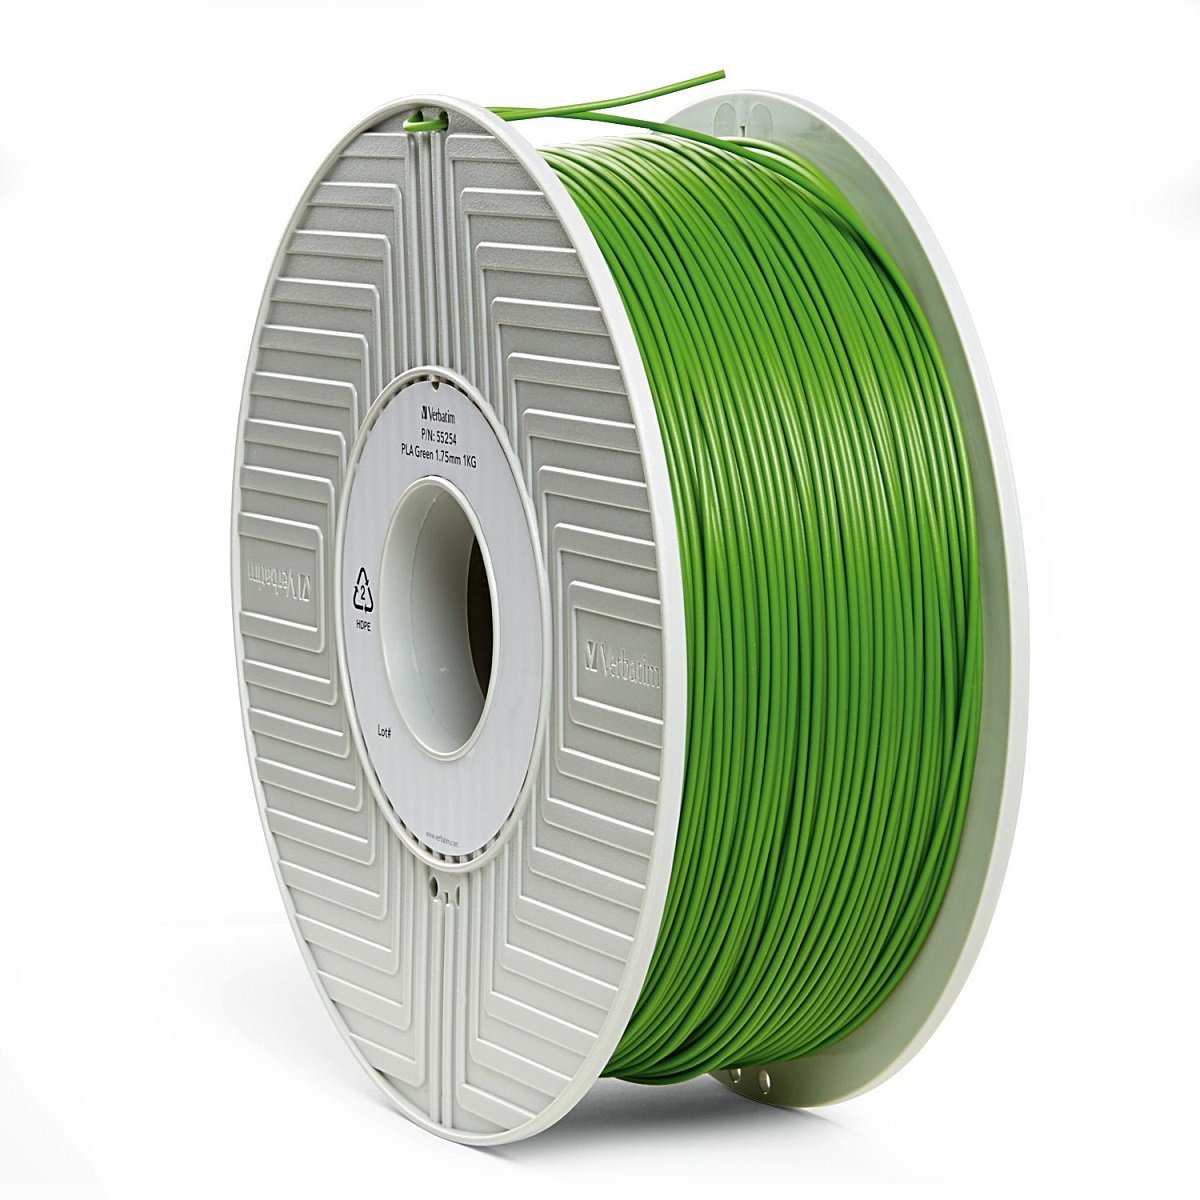 Verbatim 3D Printer Filament - PLA High-Grade 1.75mm 1kg Reel - Widely Compatible with 3D Printers - Orange 55255